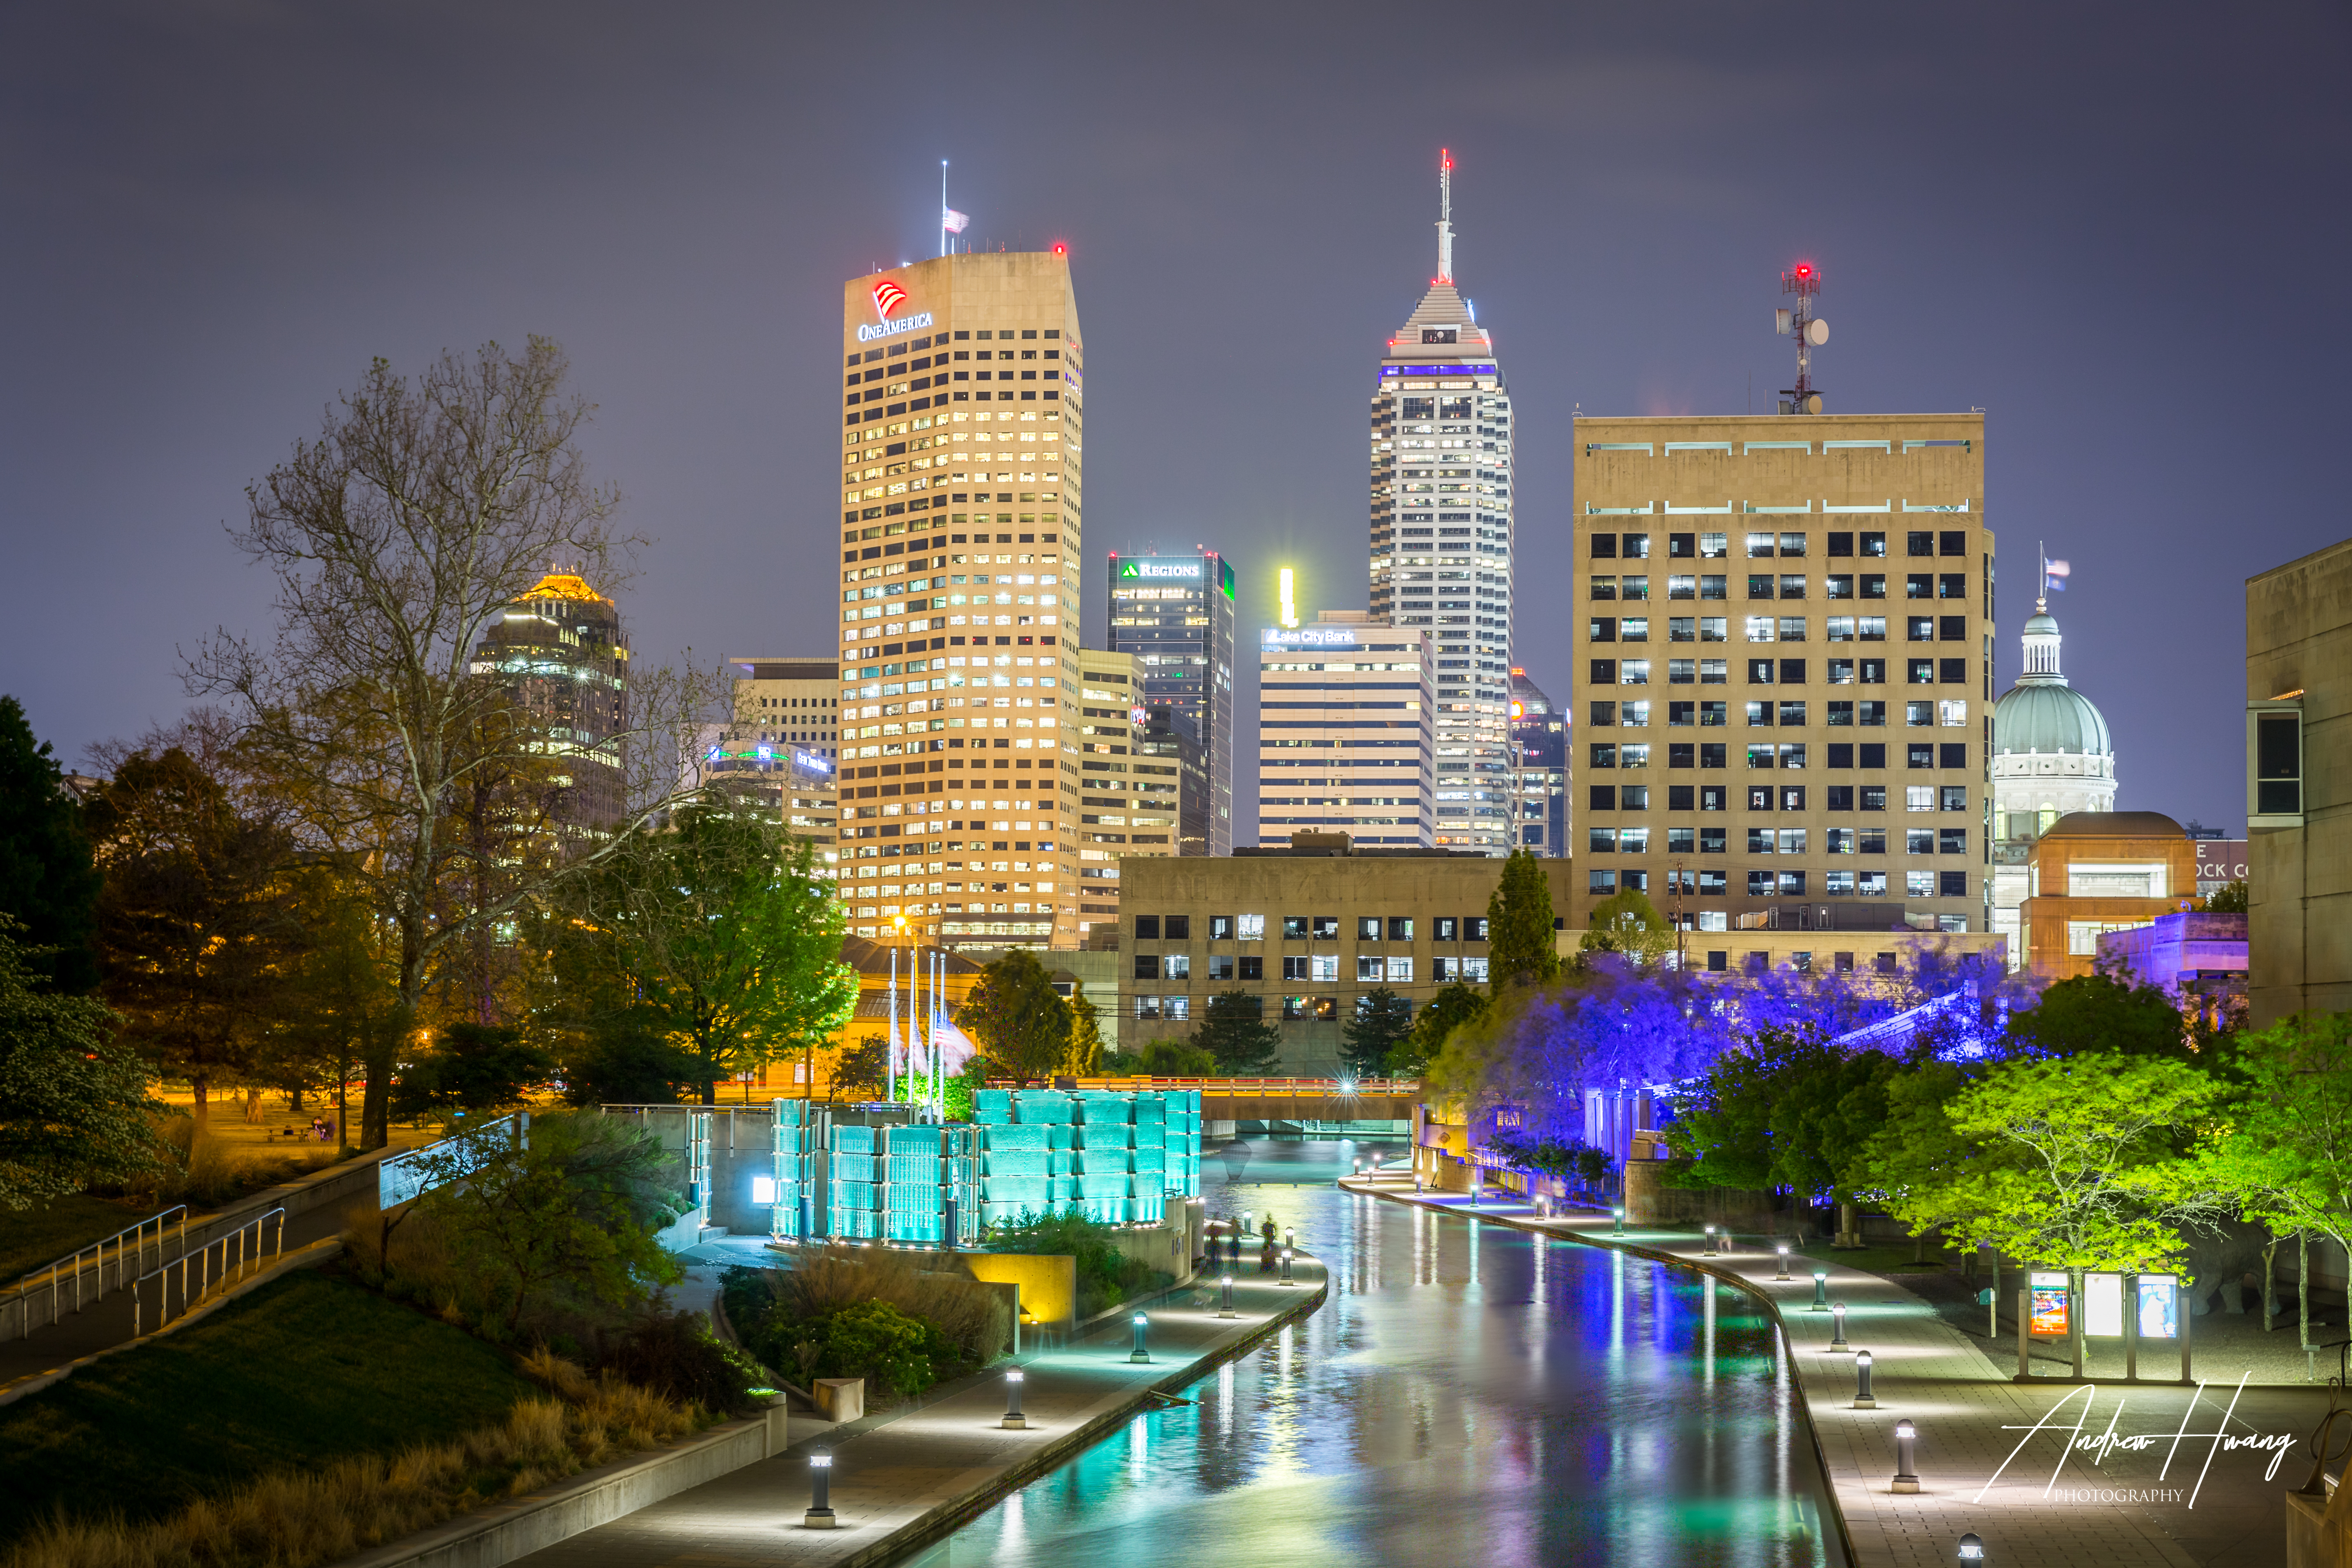 Central Canal Indianapolis Night Shot